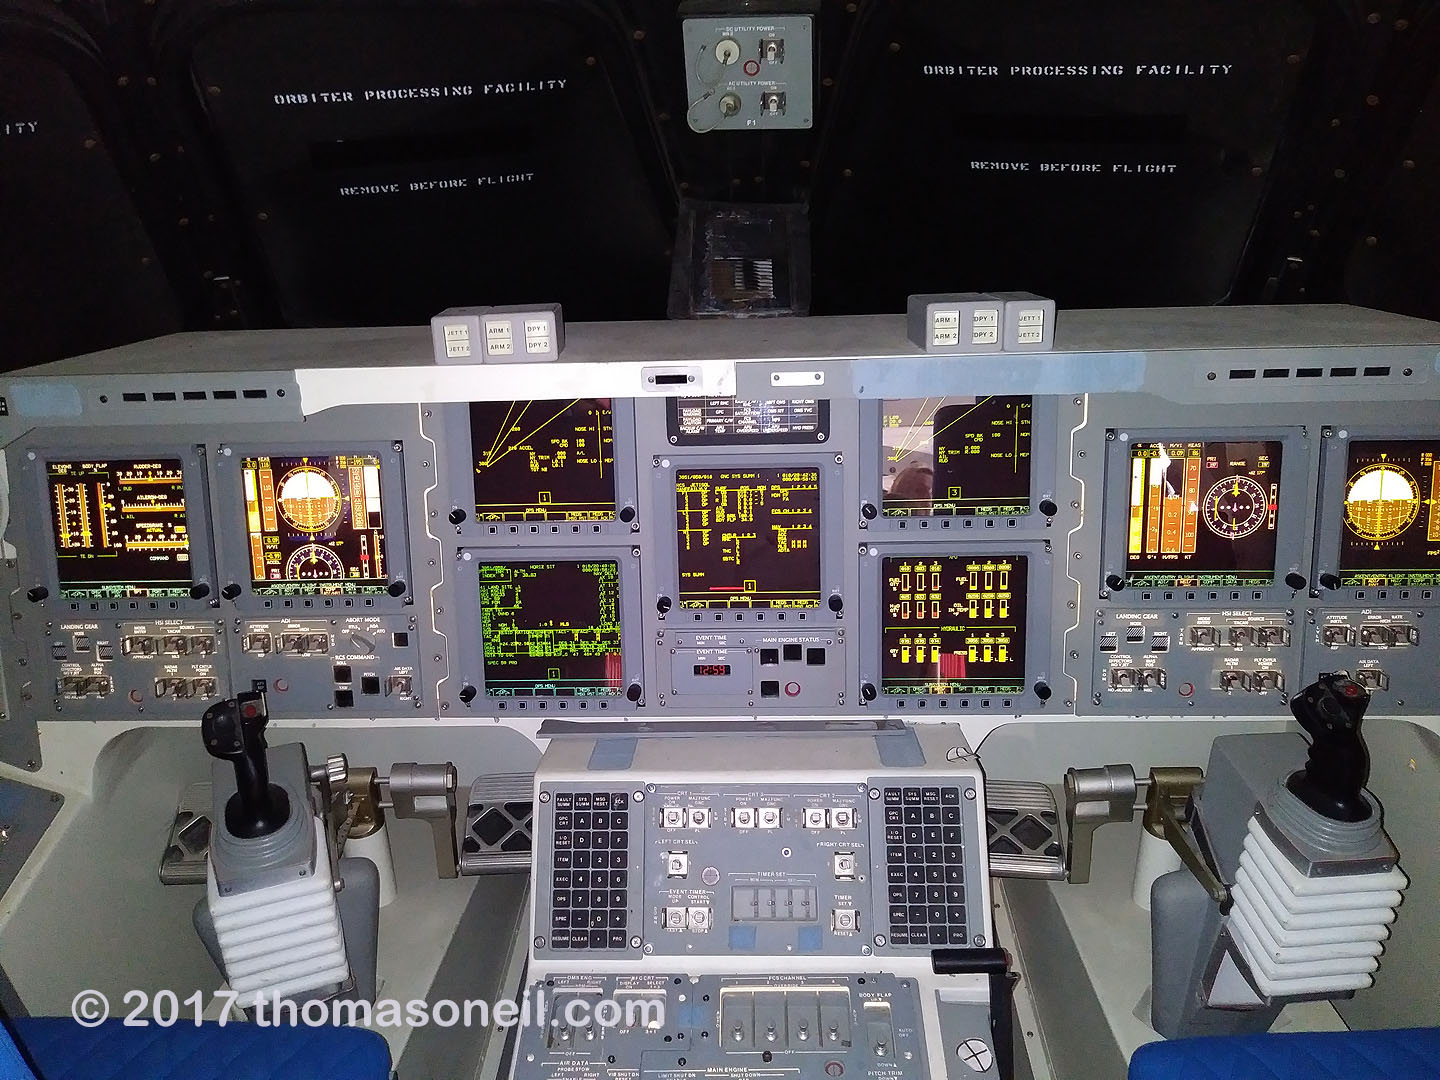 Control panel for Space Shuttle replica Independence, Johnson Space Center, Houston, July 2017.  Click for next photo.